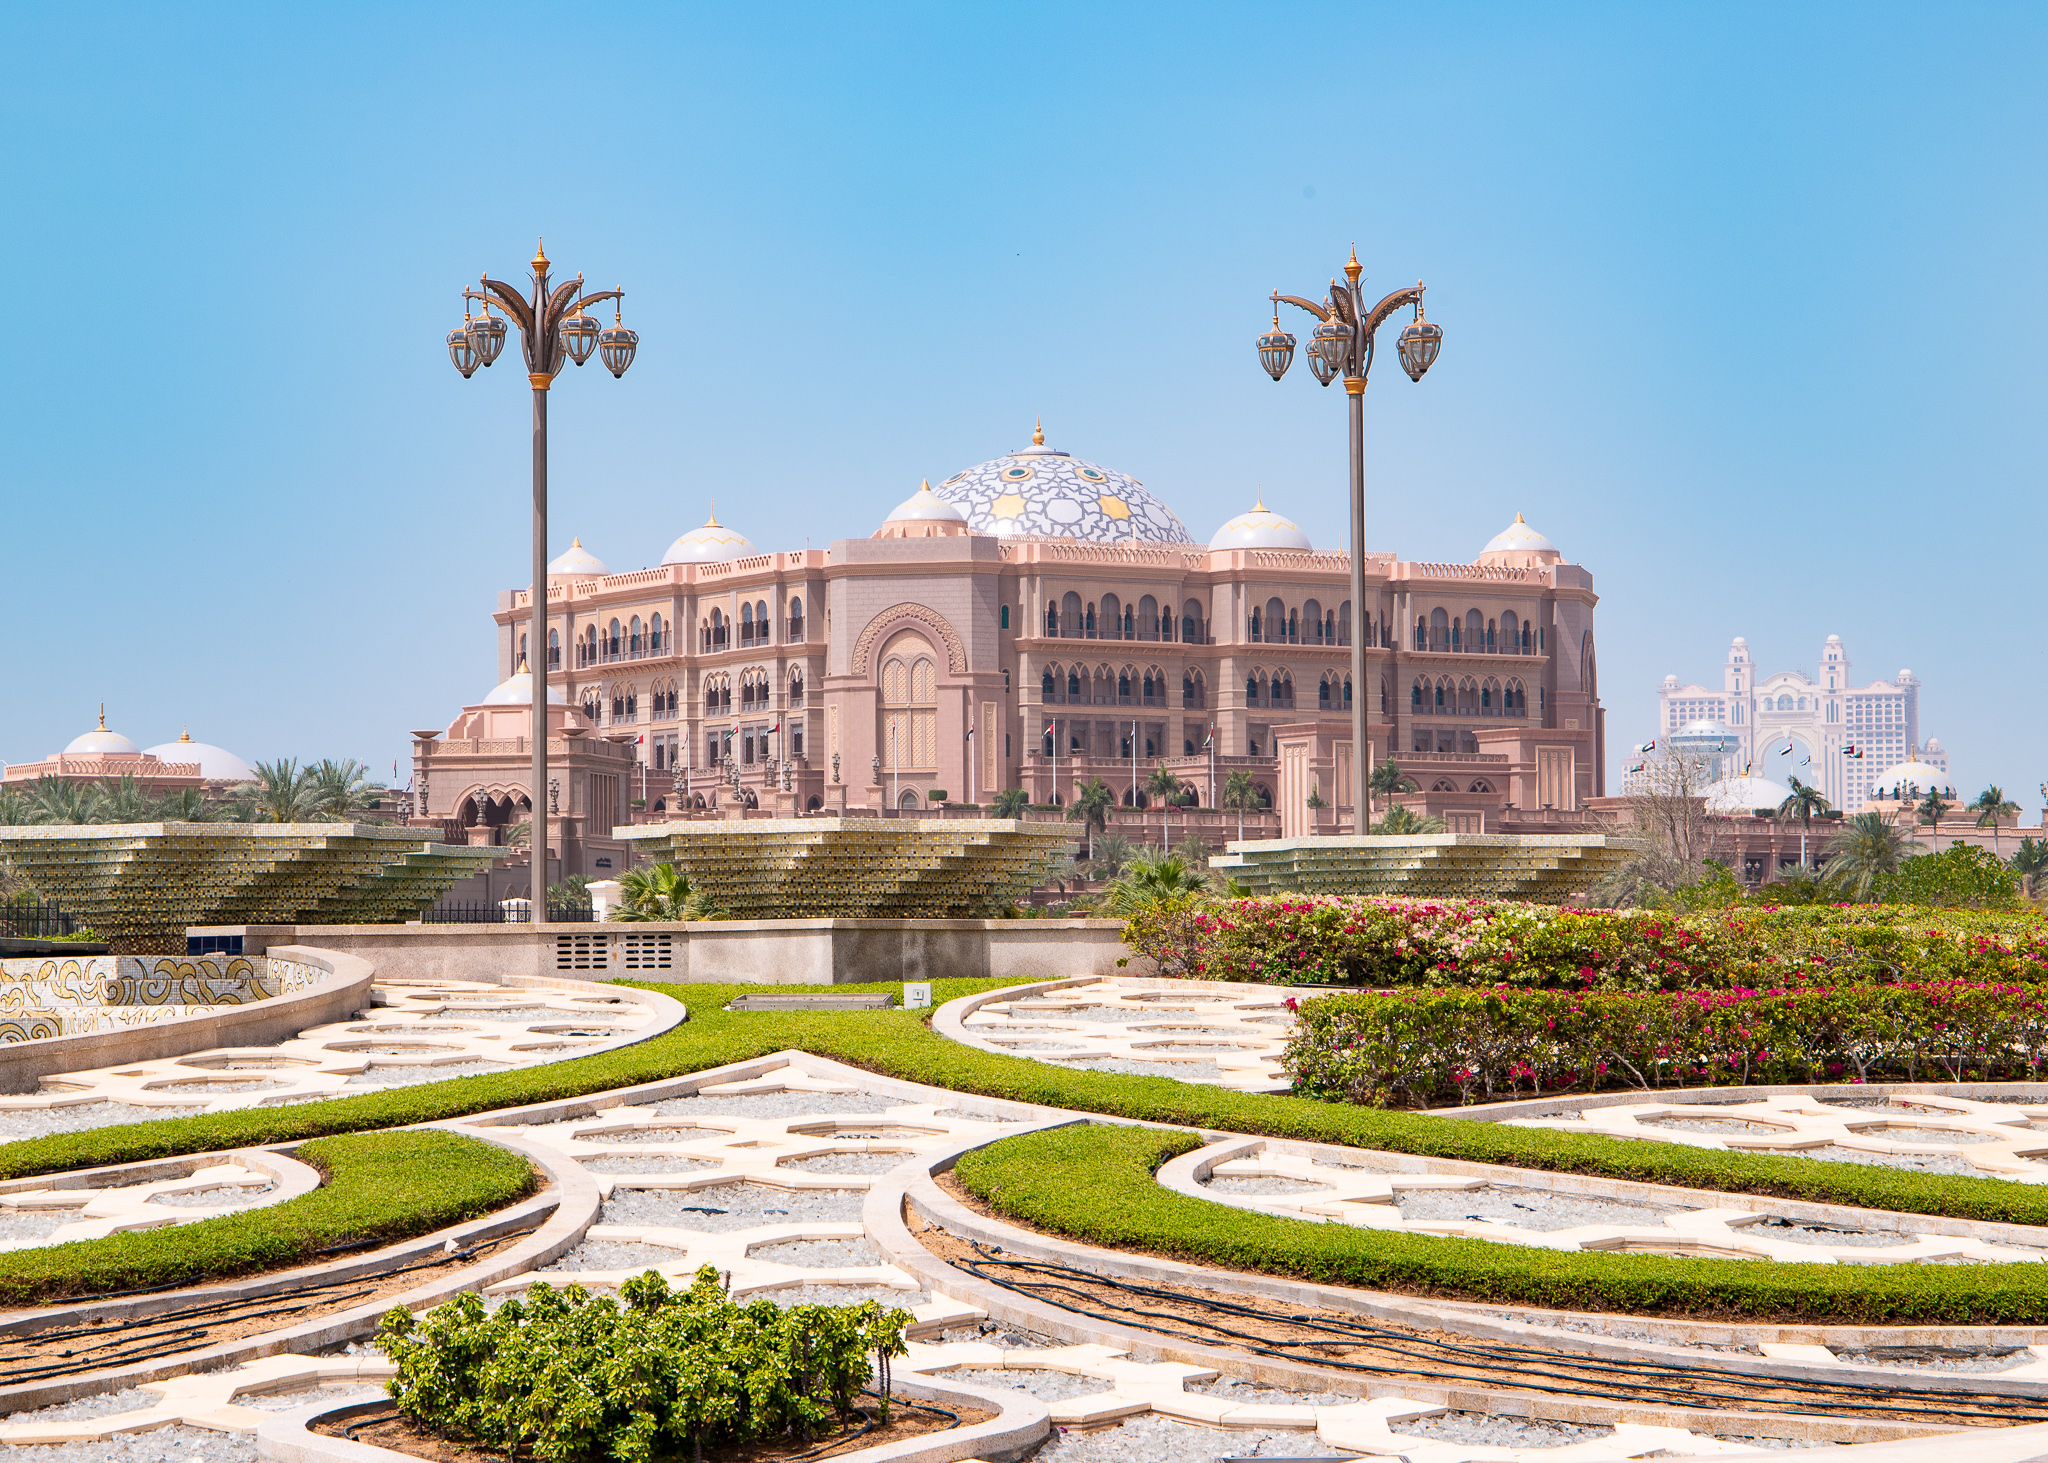 The Emirates Palace glittering amidst the dust and haze